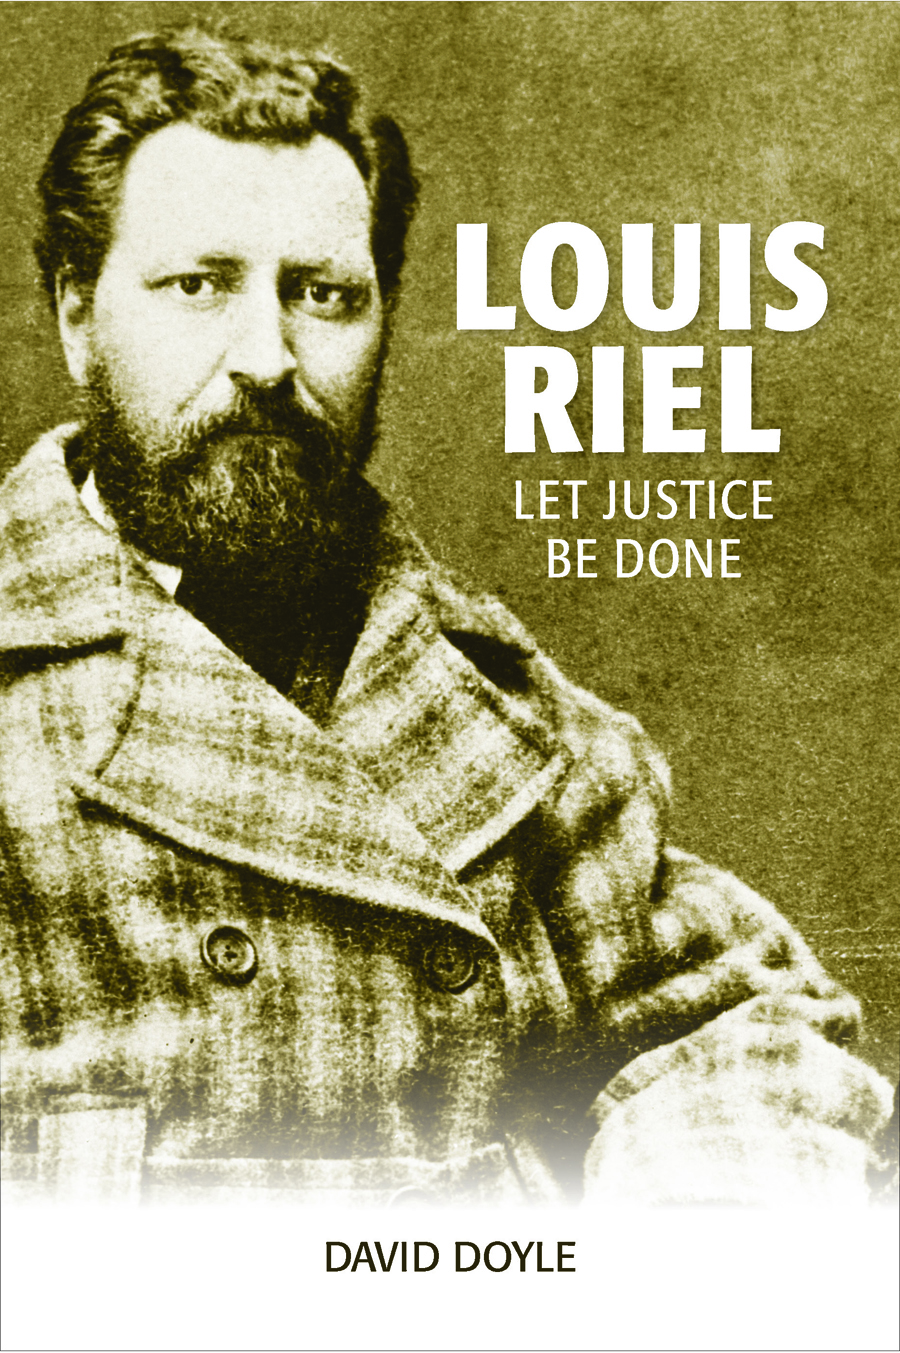 Louis Riel: Let Justice Be Done